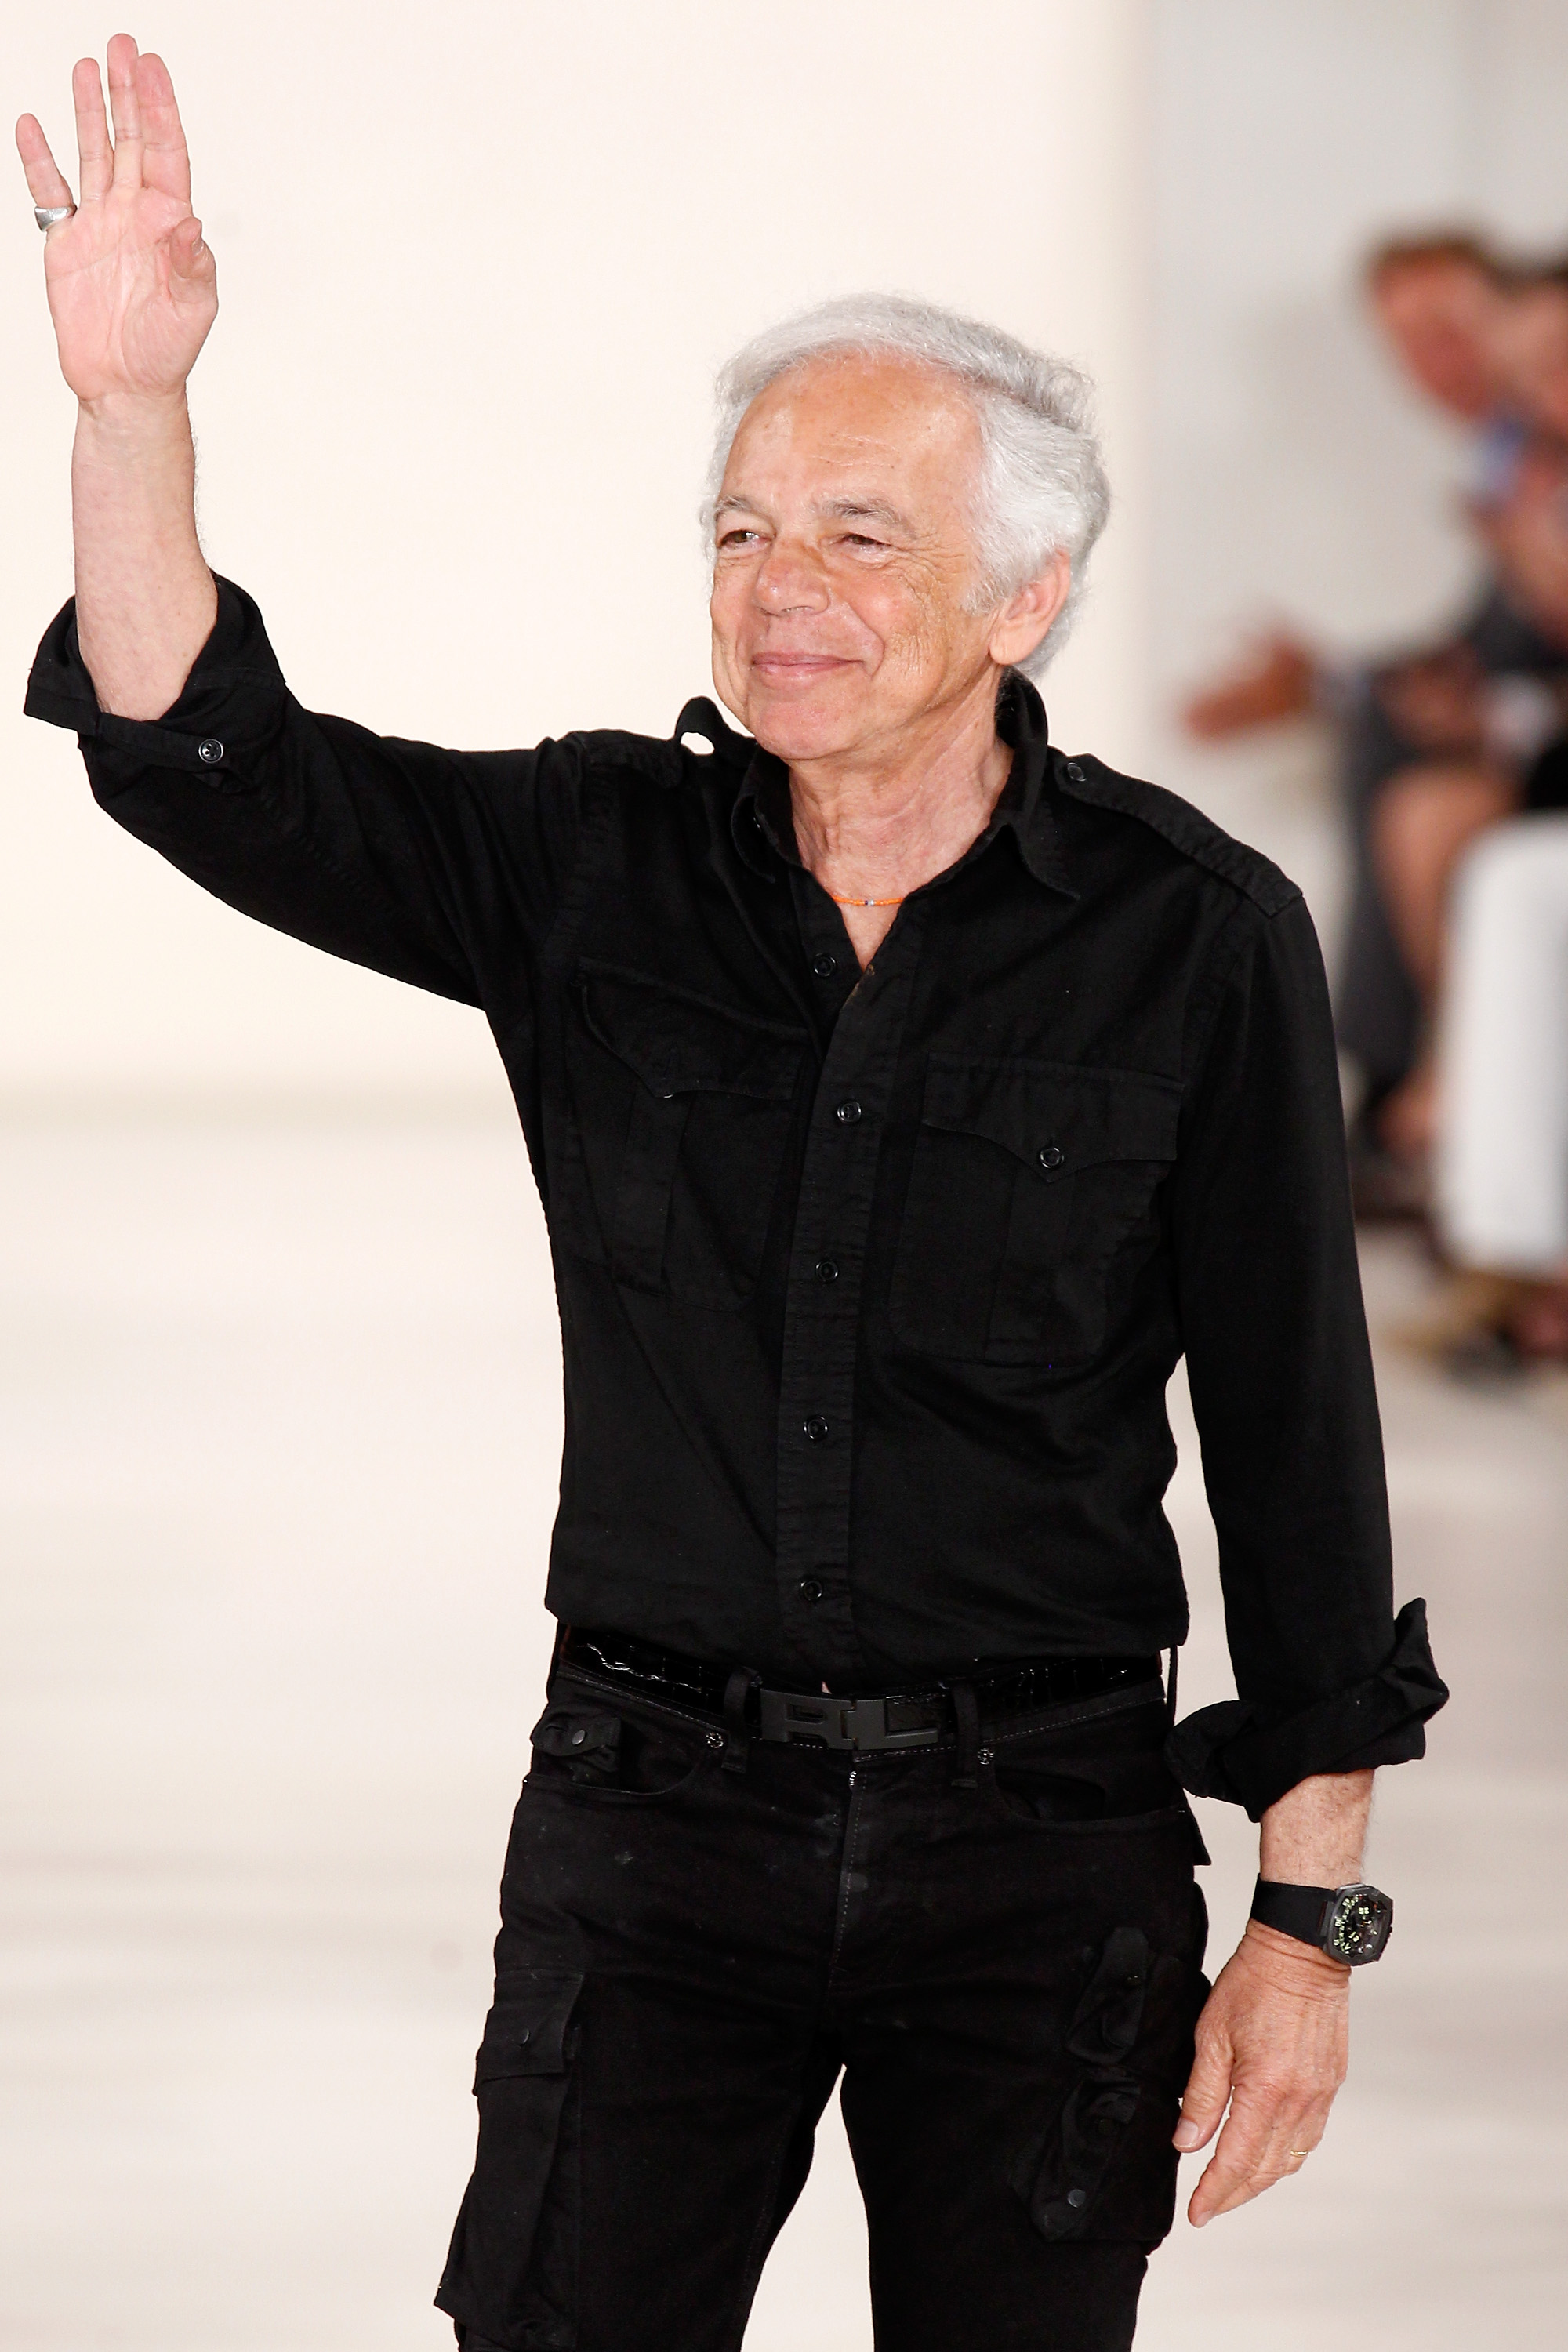 Ralph Lauren at the Ralph Lauren fashion show during Mercedes-Benz Fashion Week Spring 2015 in New York City on Sept. 11, 2014.